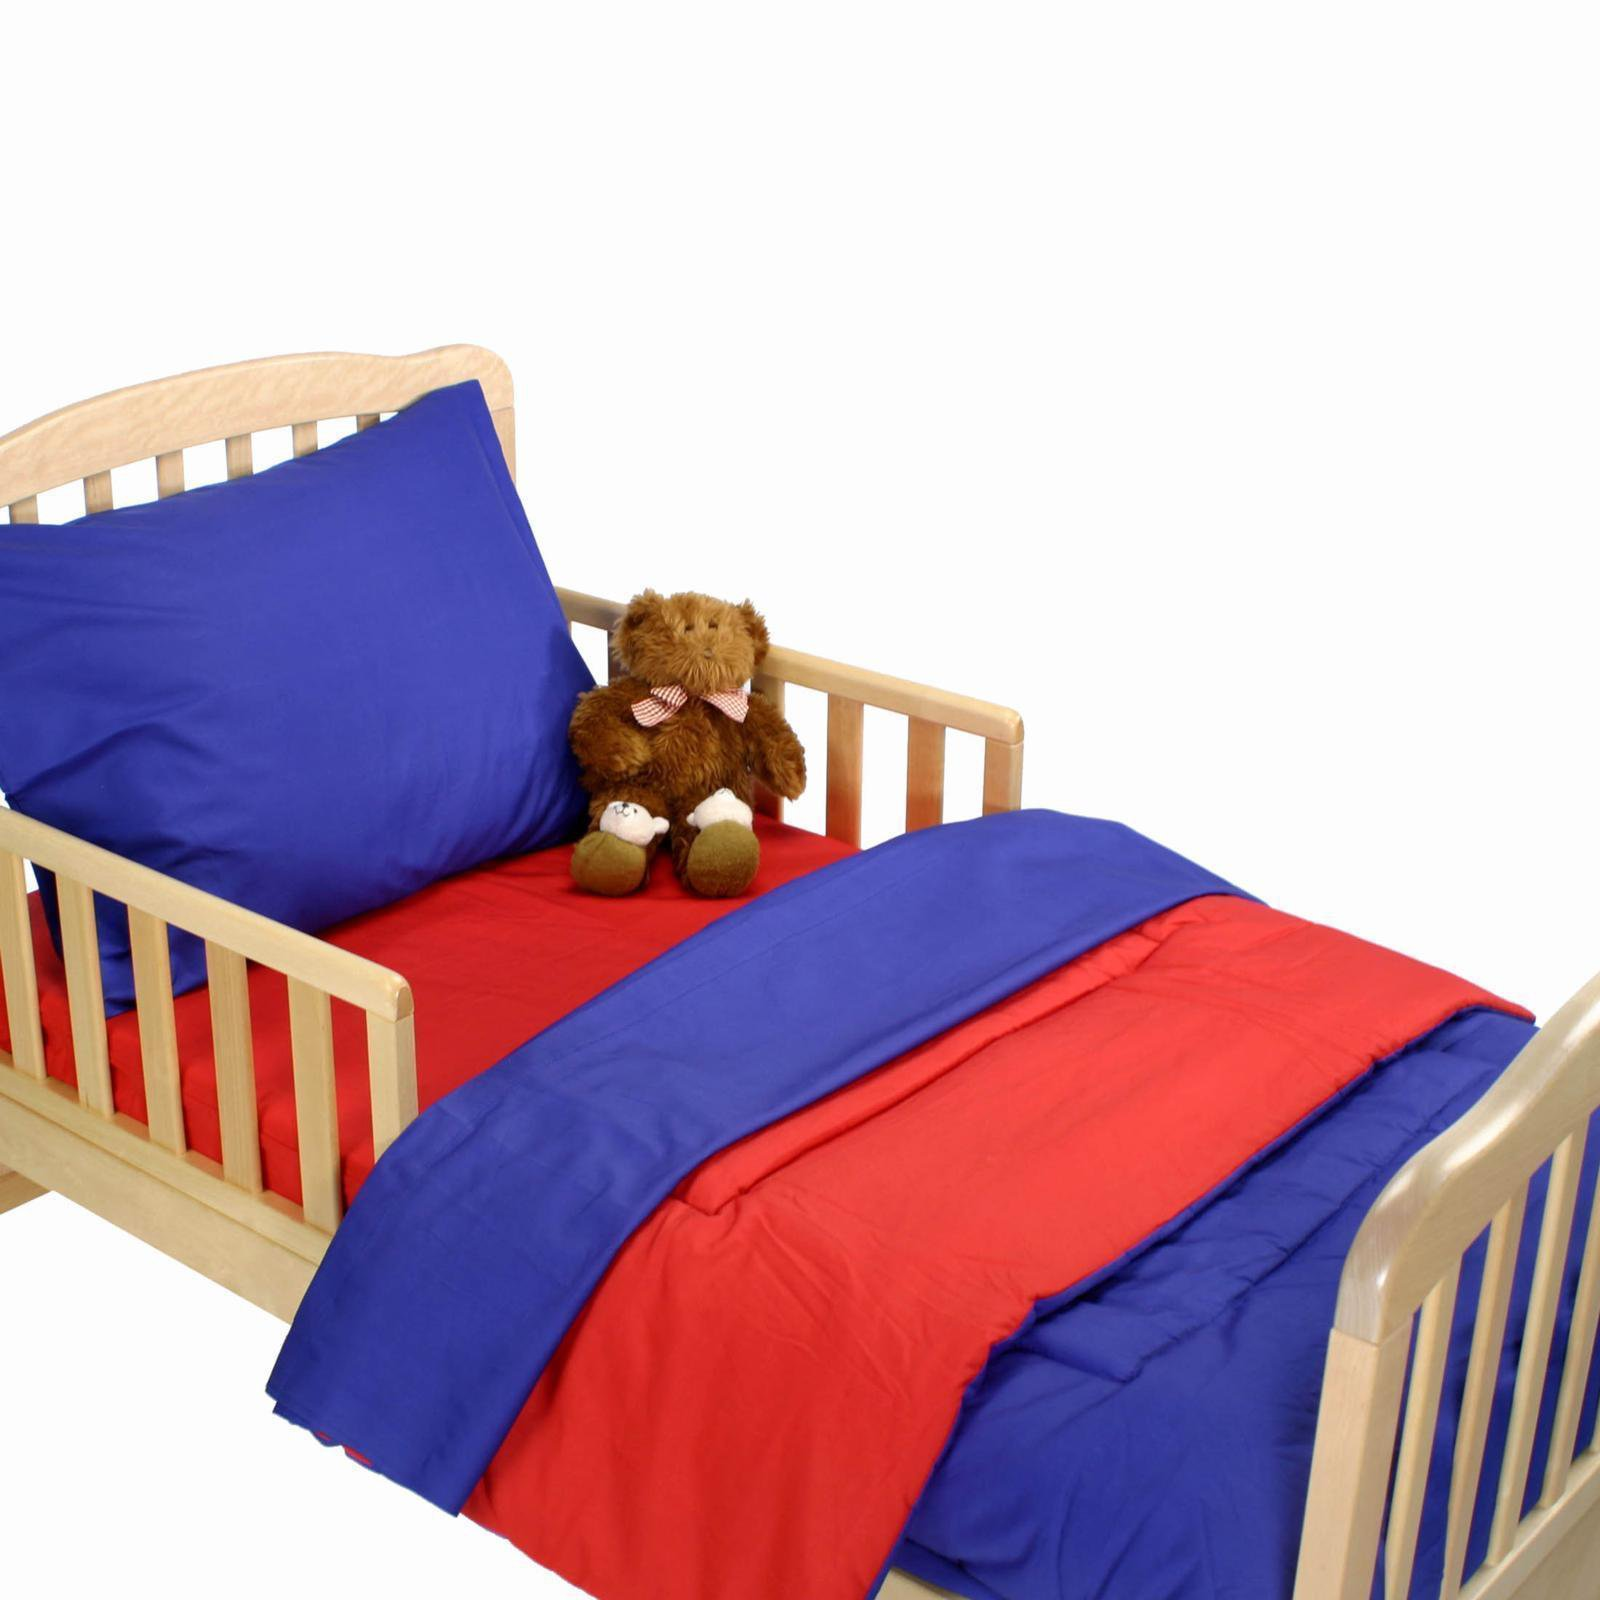 American Baby Company Toddler Bedding Set - Royal Blue and Red